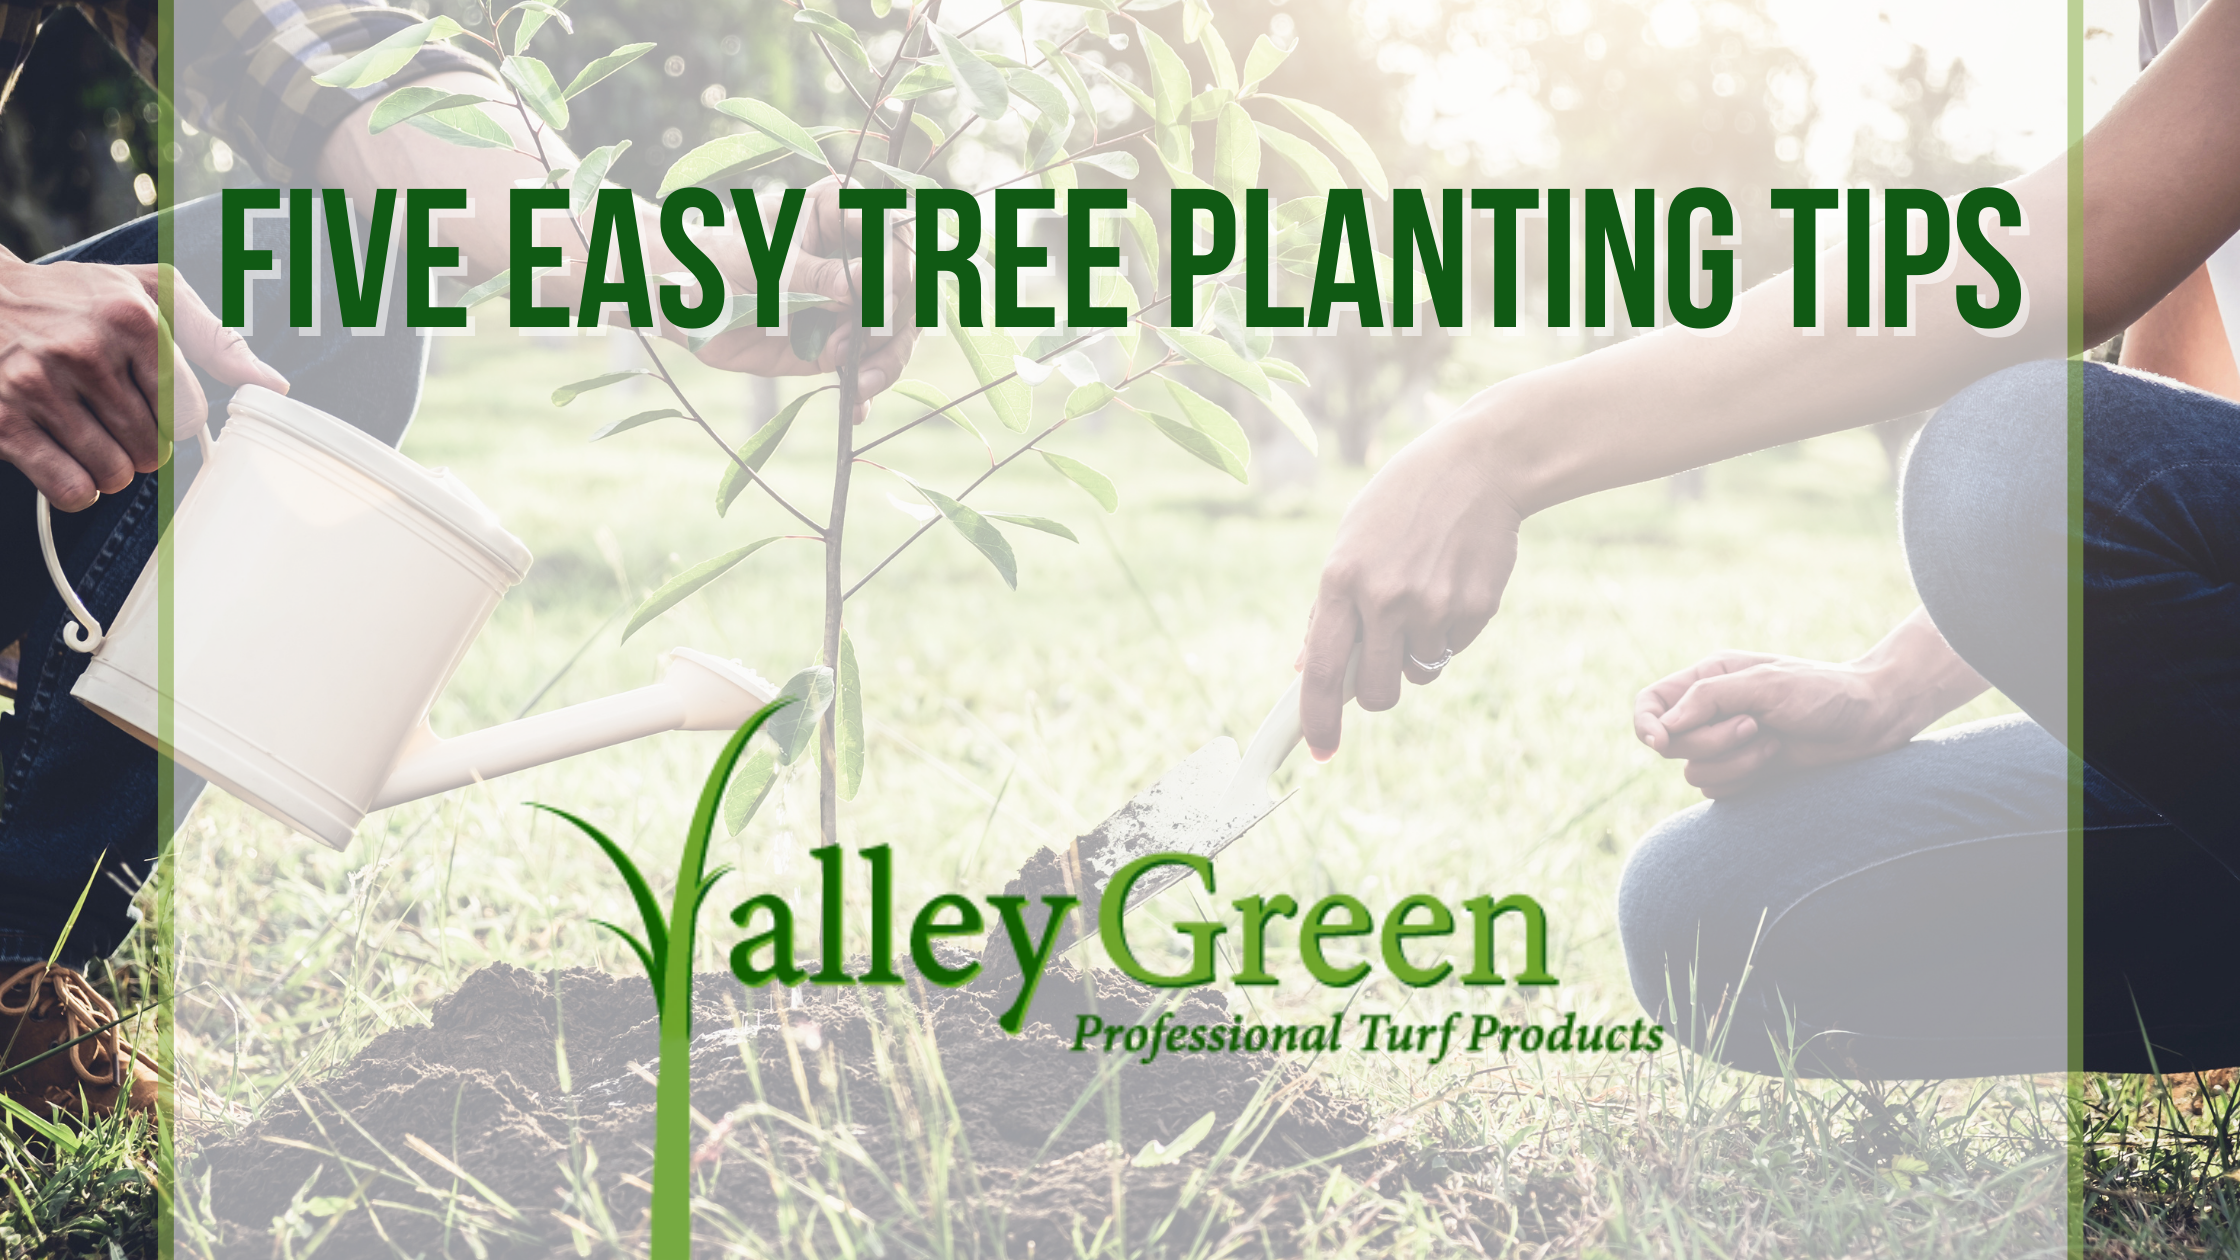 Five Easy Tree Planting Tips